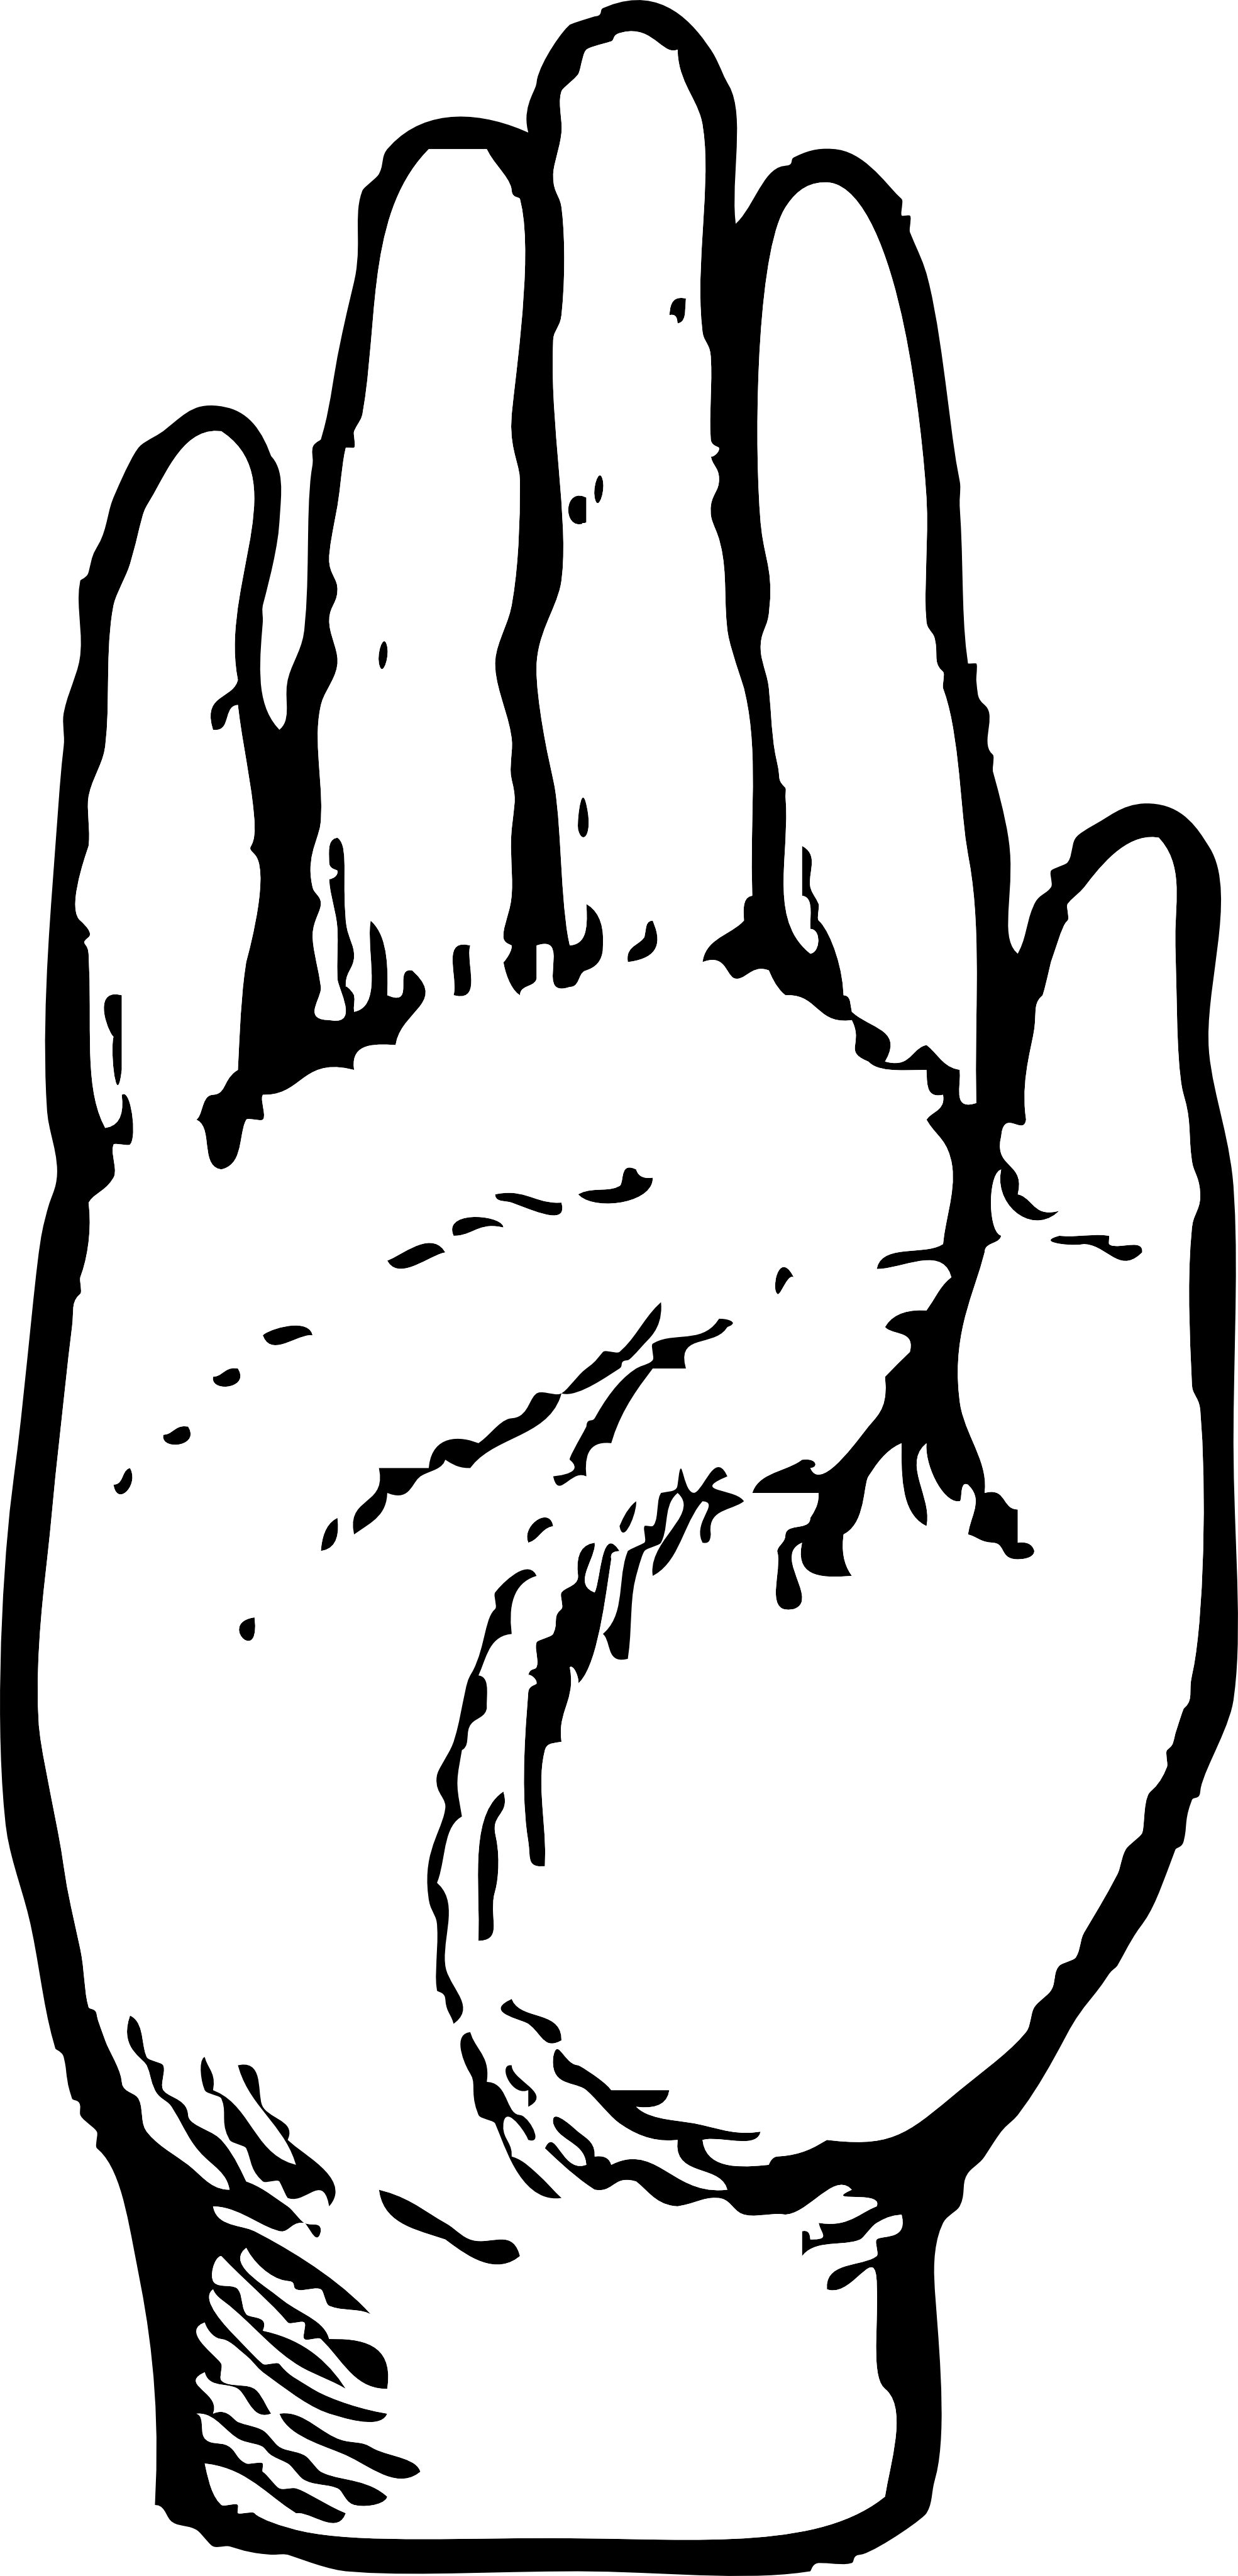 1969x4098 Helping Hands Black And White Clipart